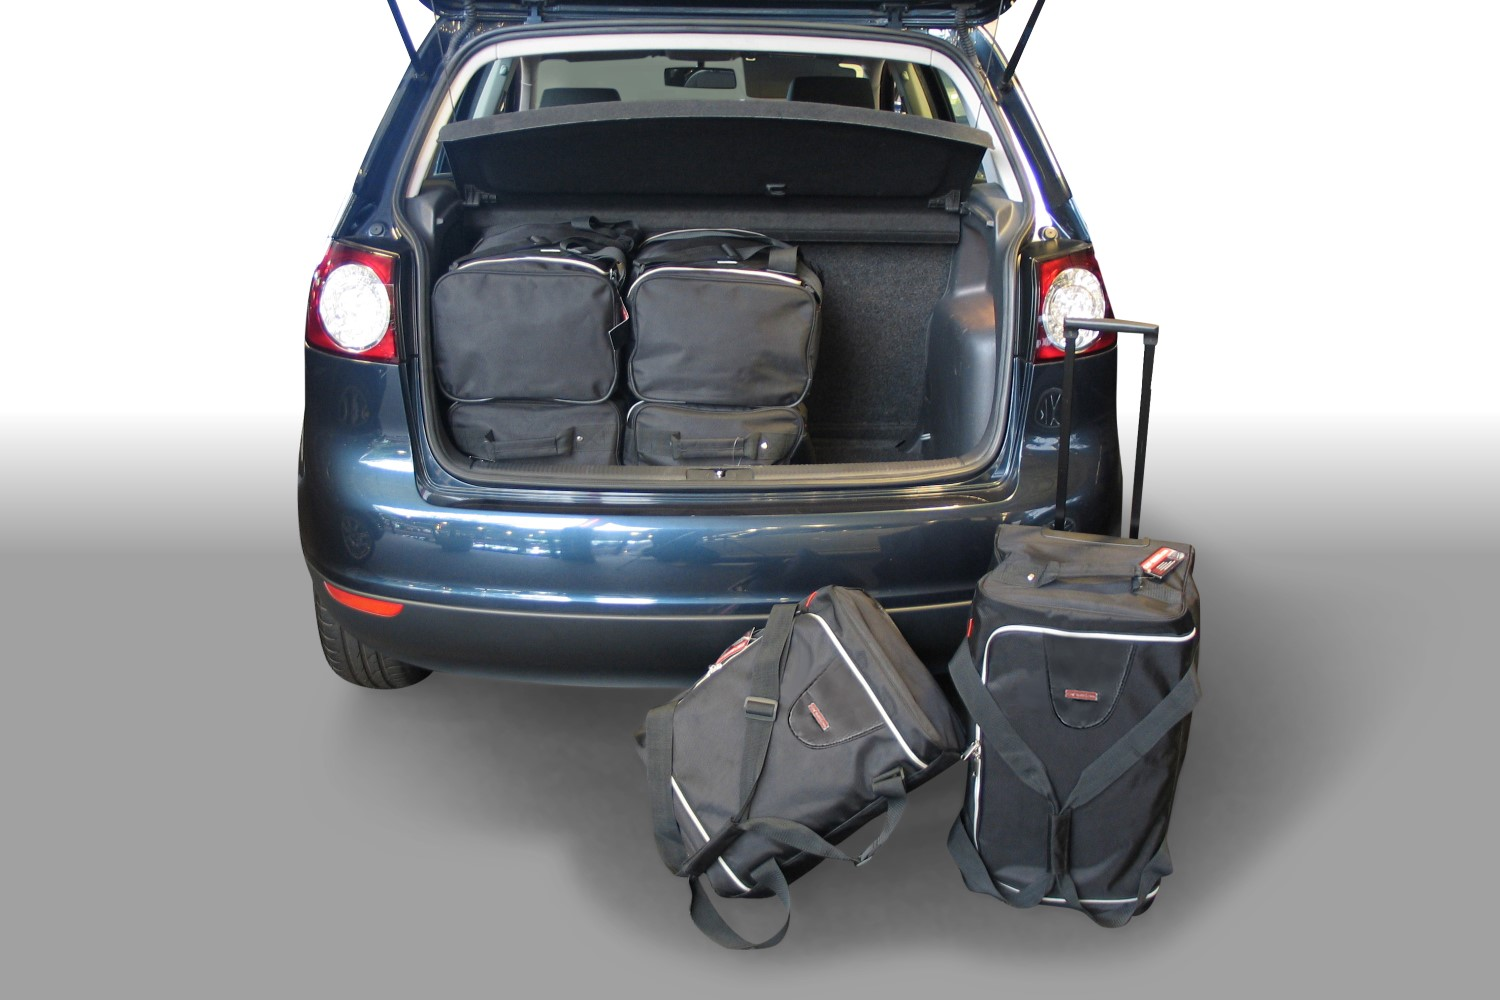 golf volkswagen golf plus 1kp 2004 2014 car bags travel. Black Bedroom Furniture Sets. Home Design Ideas